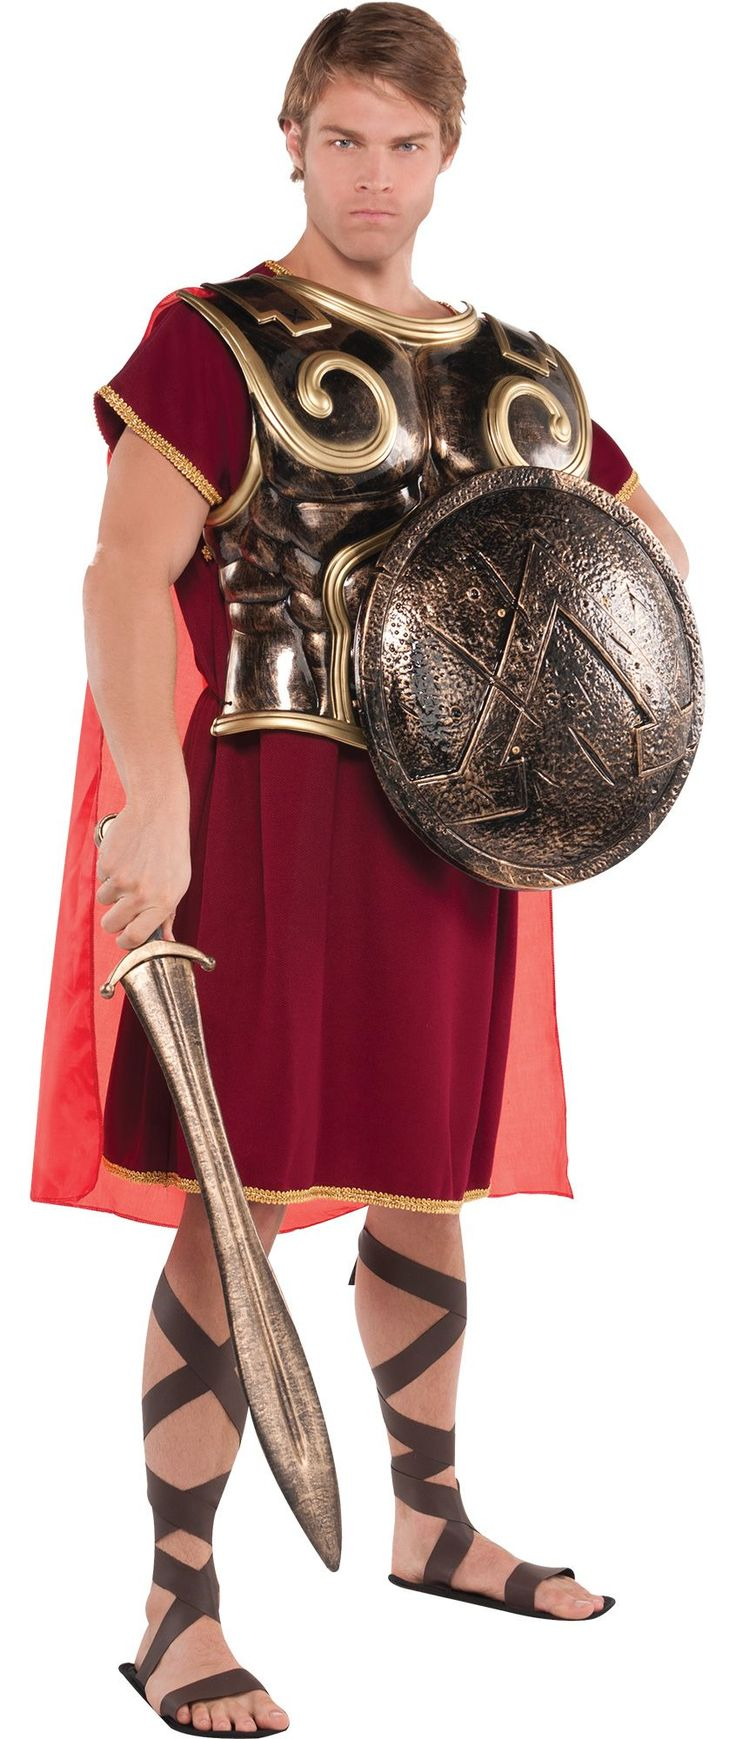 Make Your Costume - Mens Roman Soldier #2